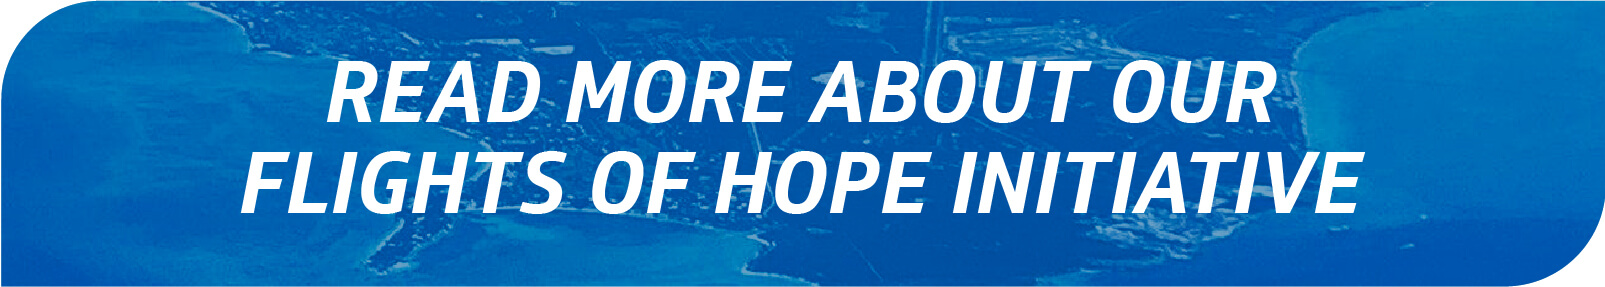 Read more about our flights of hope initiative